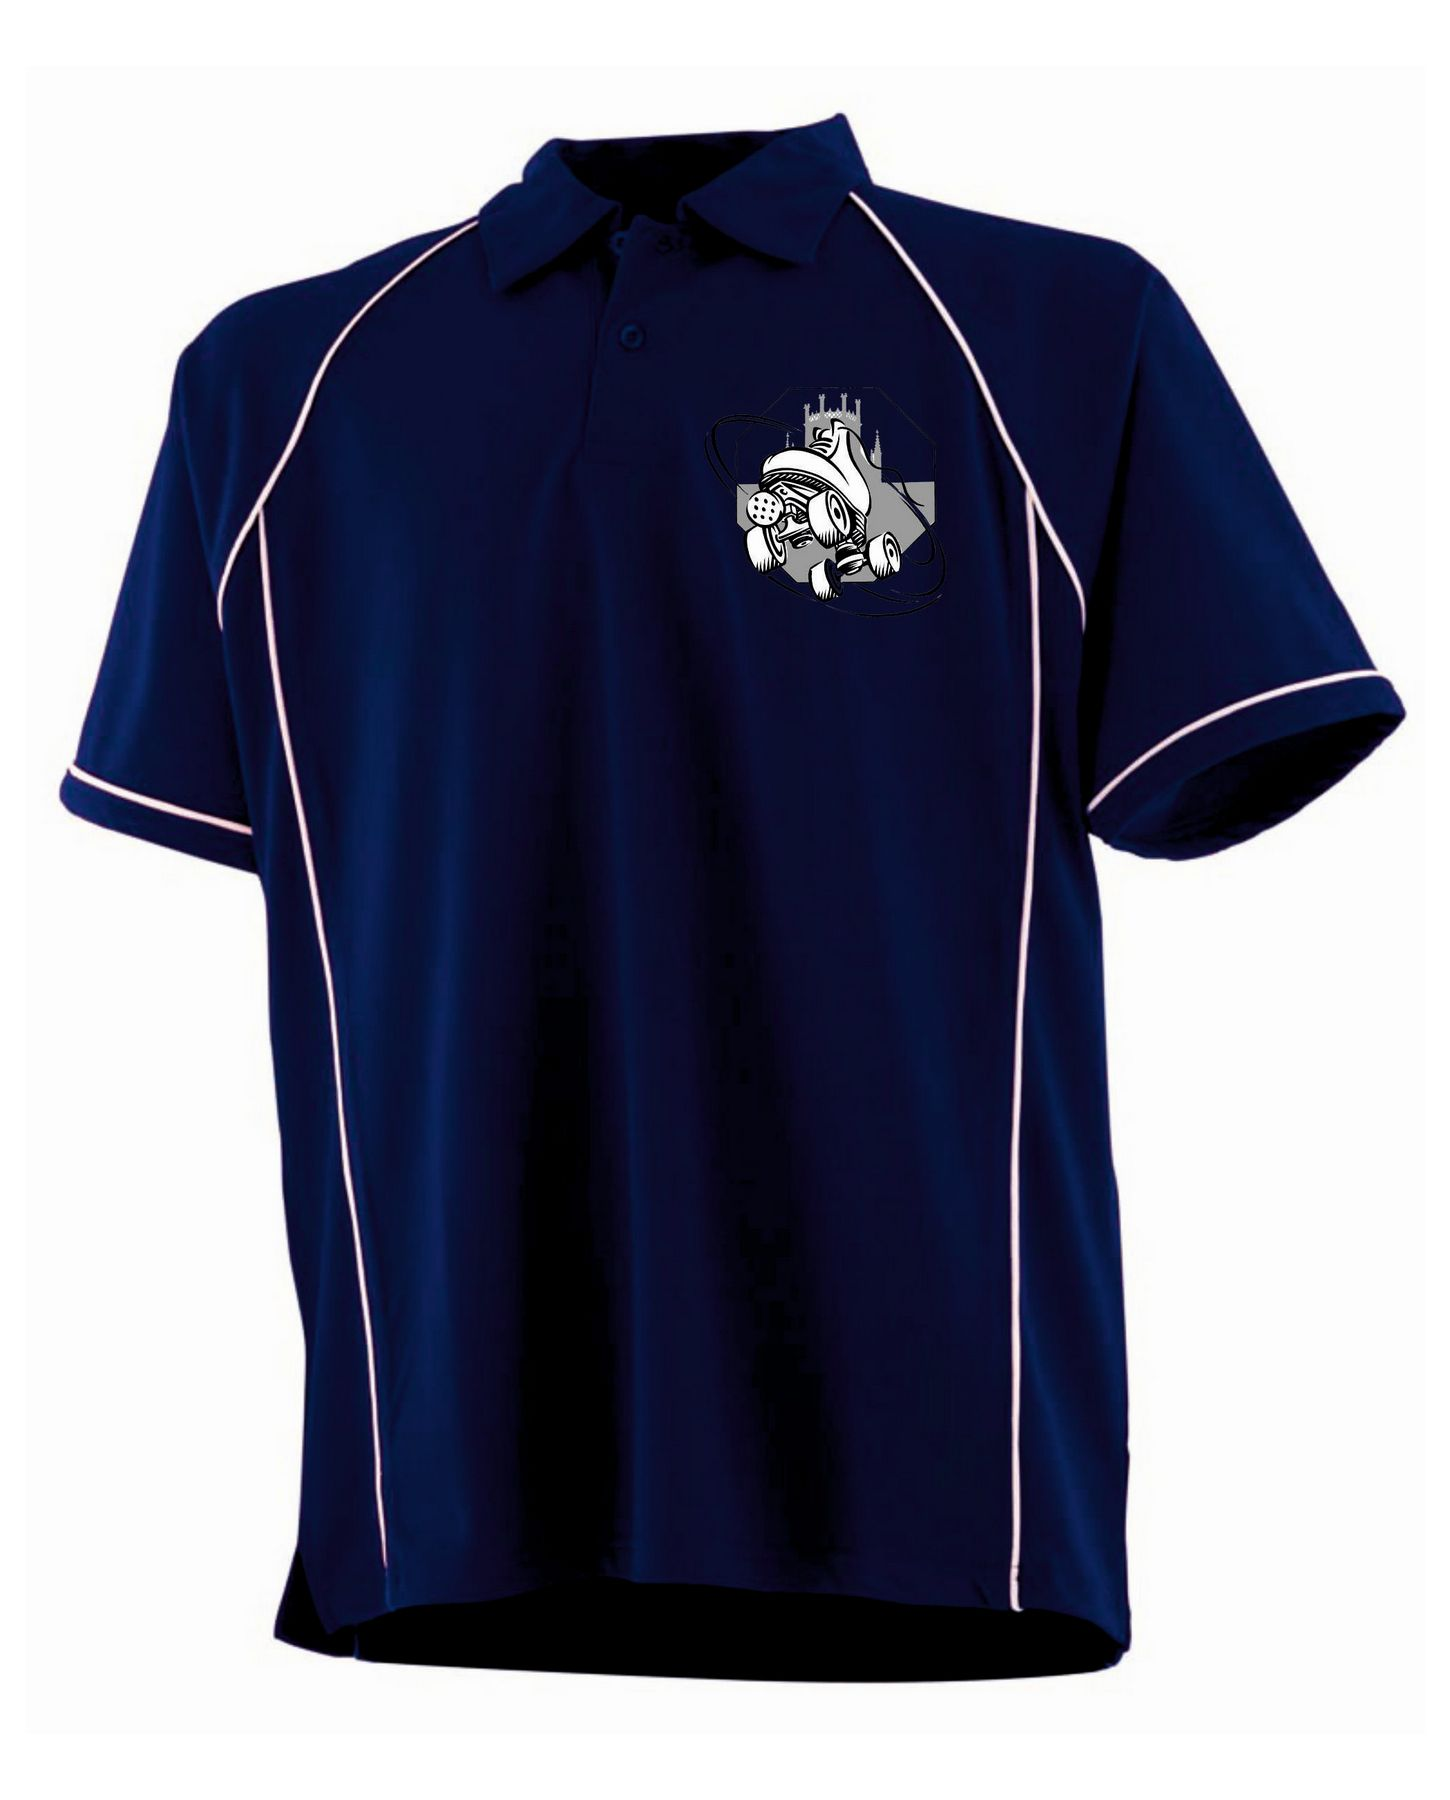 Ely Roller Skating – Performance Polo